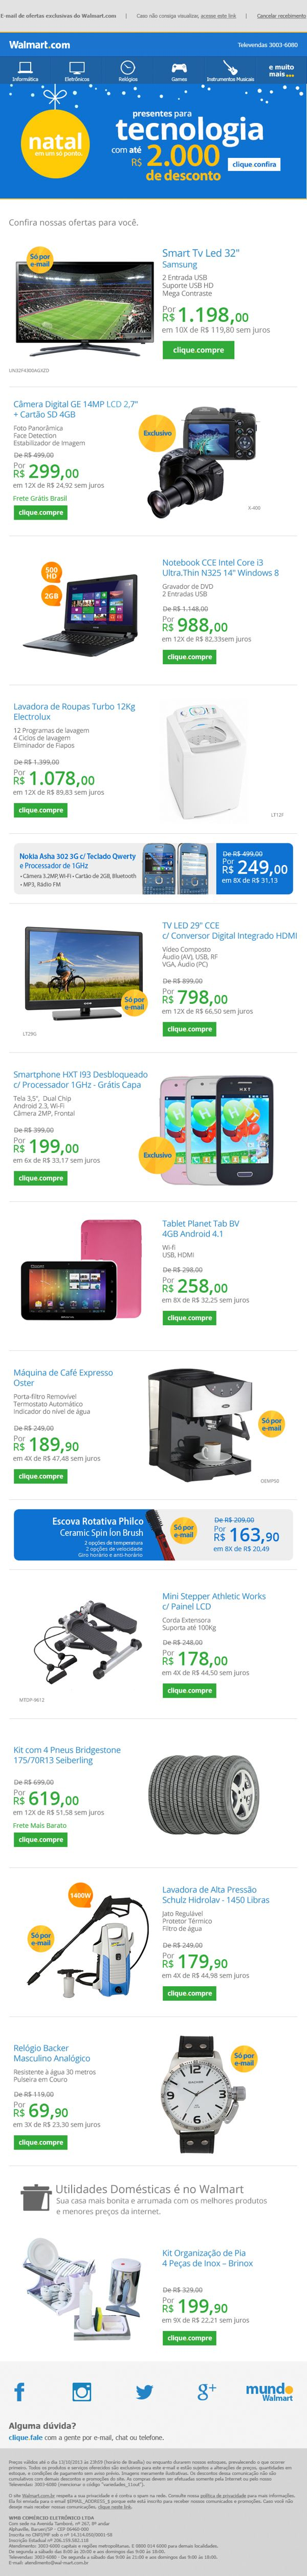 Walmart card offer prescreen - E Mail Marketing Para O Cliente Walmart By Gabriela Orrego Via Behance